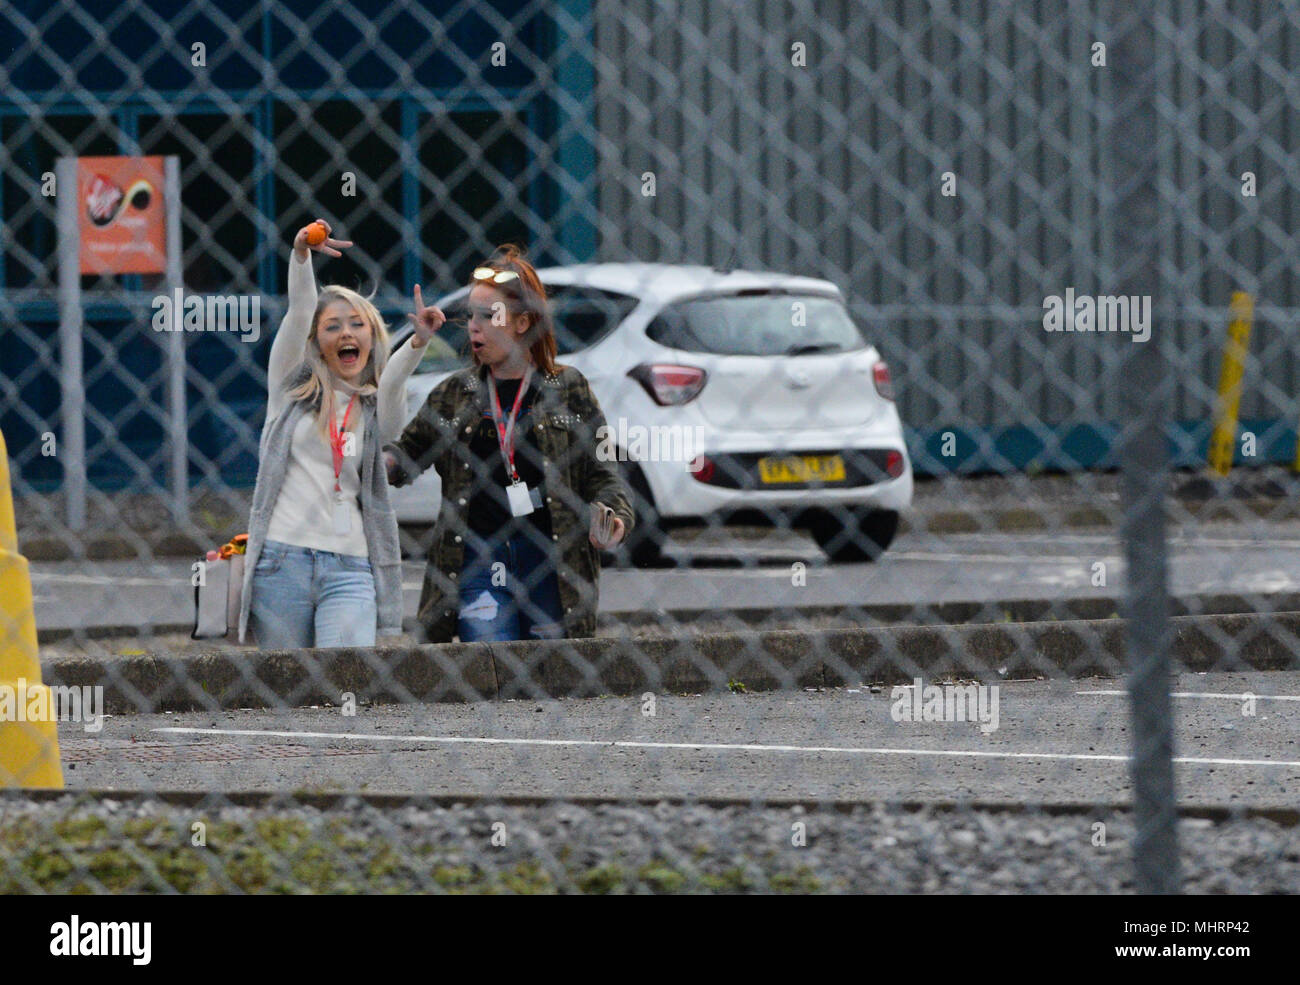 Swansea, South Wales, UK. May 3rd 2018 The Virgin Media call centre in Swansea, South Wales, where news broke today that almost 800 jobs are to go as the company plans to call the Swansea base. Two members of staff look more than happy as they leave. Credit: Robert Melen/Alamy Live News. Stock Photo